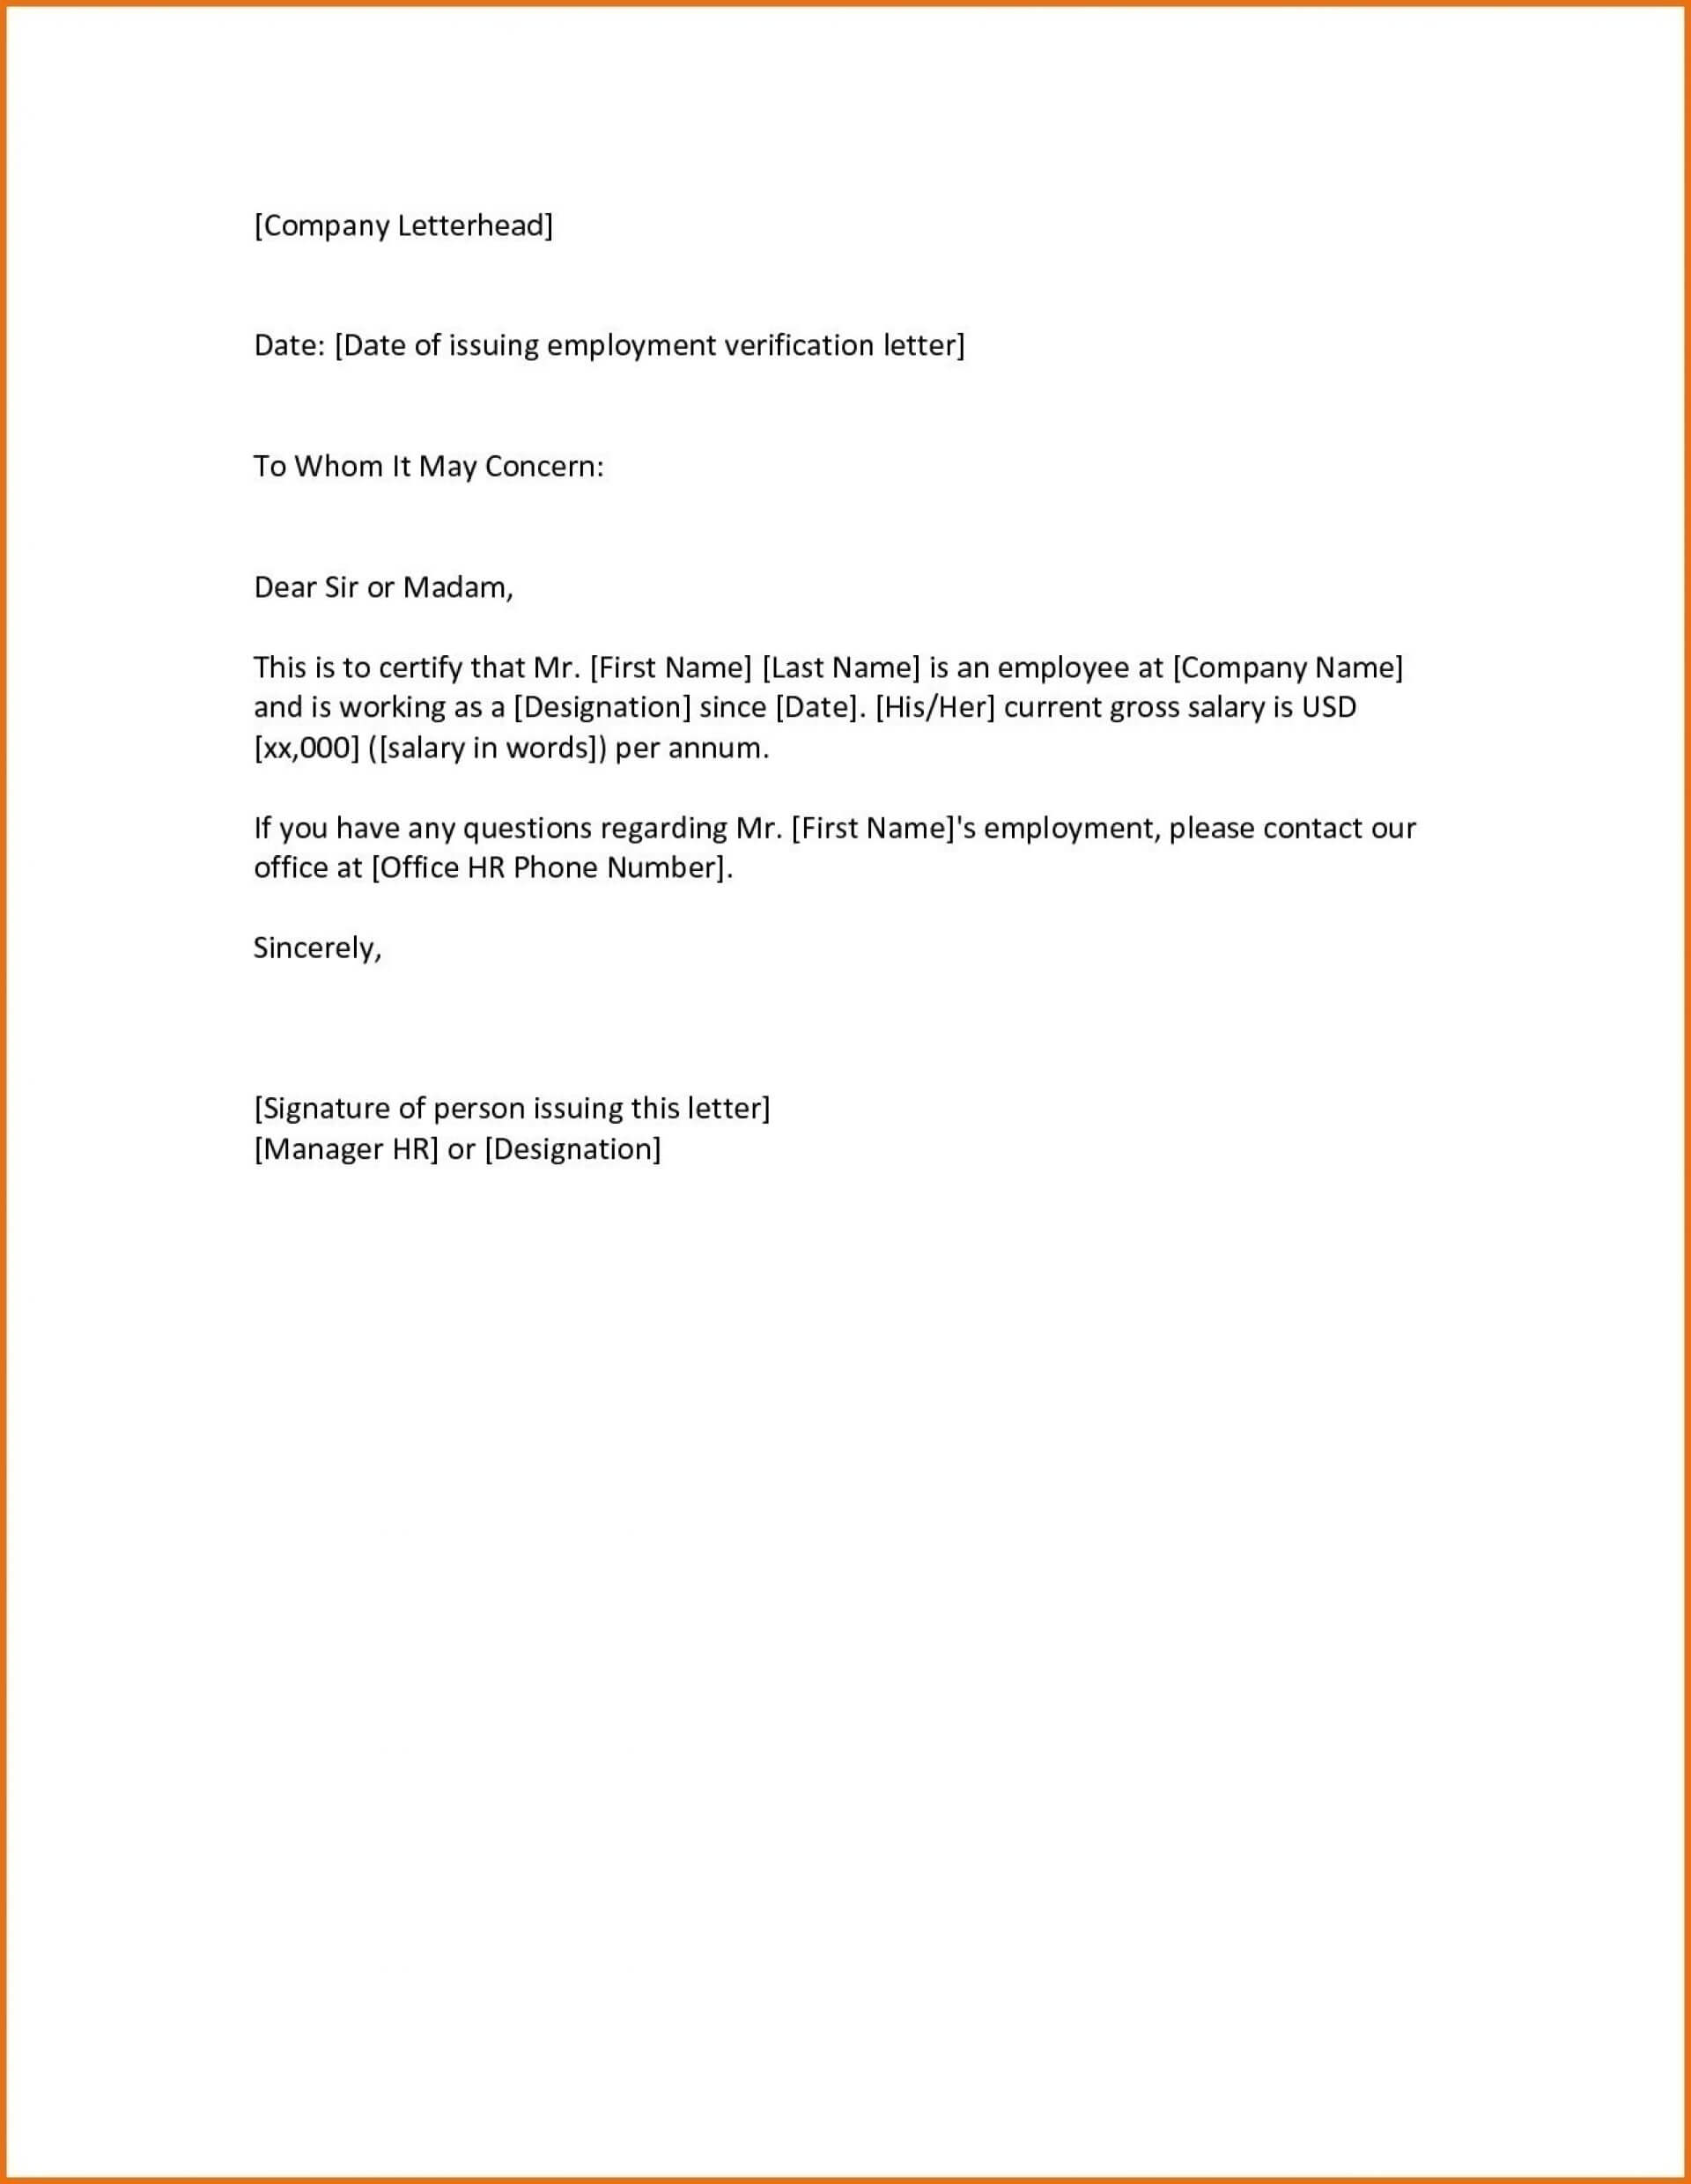 013 Employment Verification Letter Template Word Free Ideas Regarding Employment Verification Letter Template Word